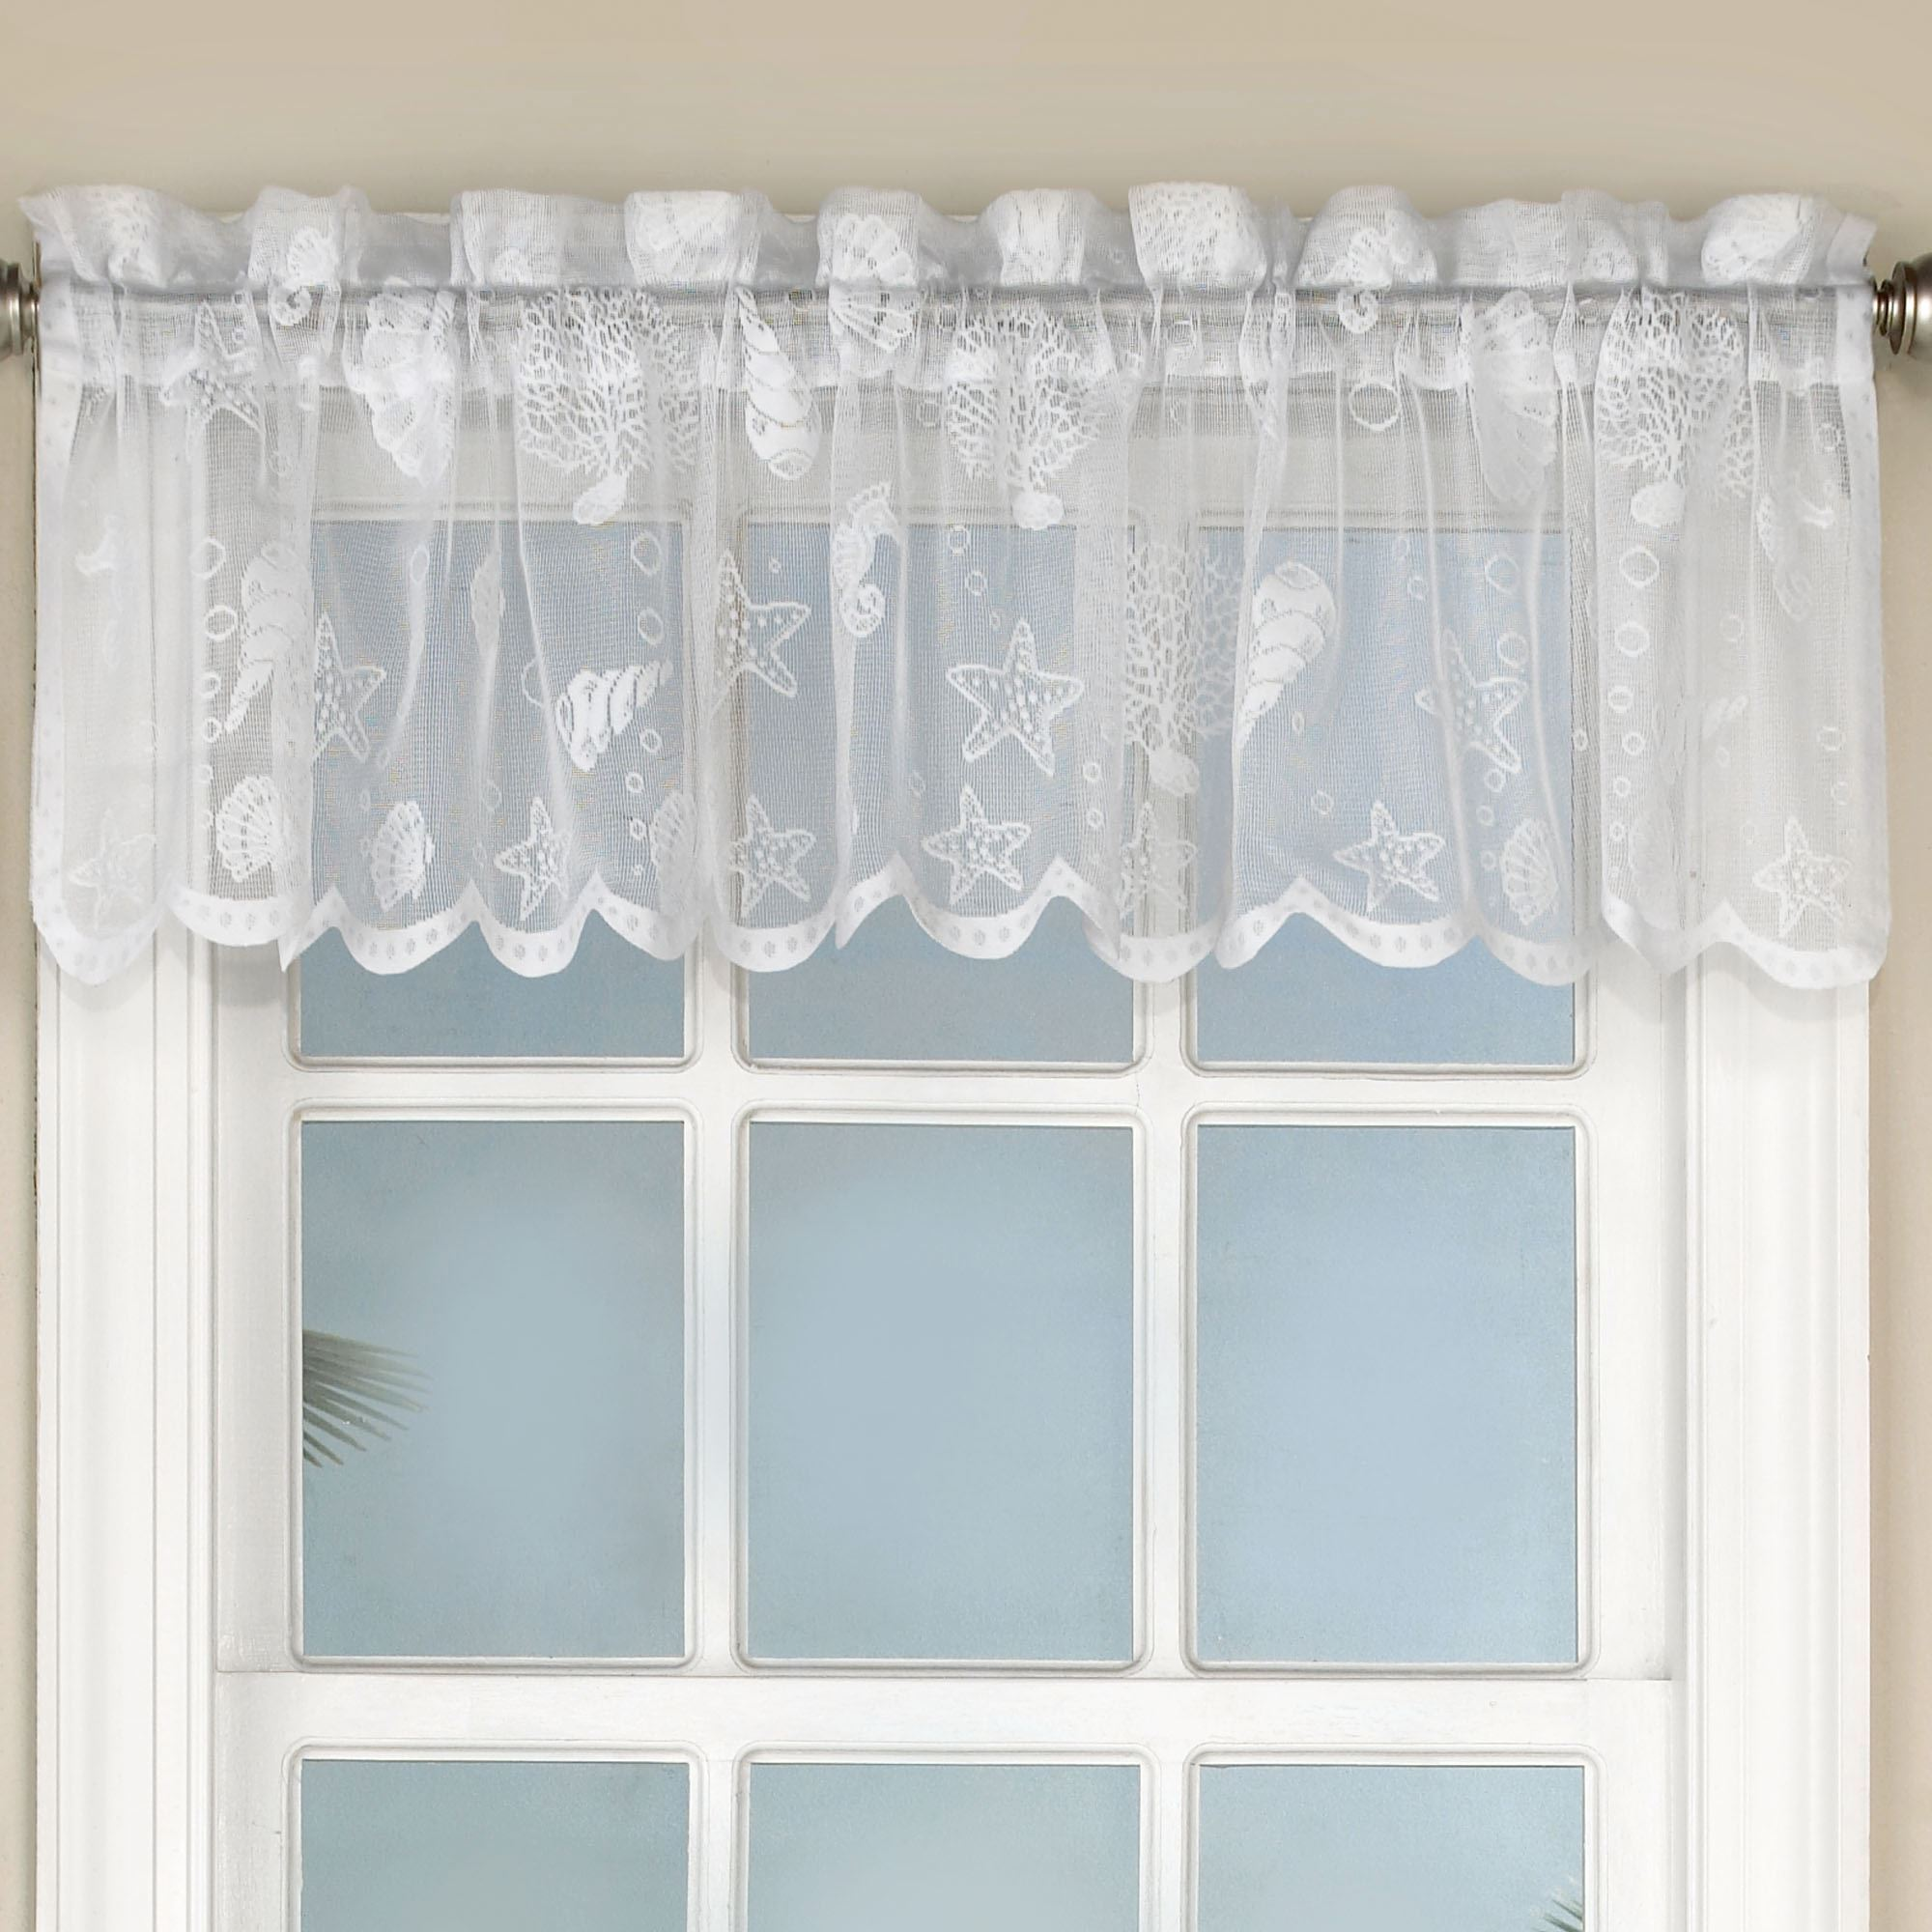 windows glamorous t beautiful exceptional black cottage refreshing valance lovely full themed size gripping coastal imposing drapes window kitchen yellow intrigue and cheap praiseworthy of scene bathroom curtains theme valances small beach exquisite orange